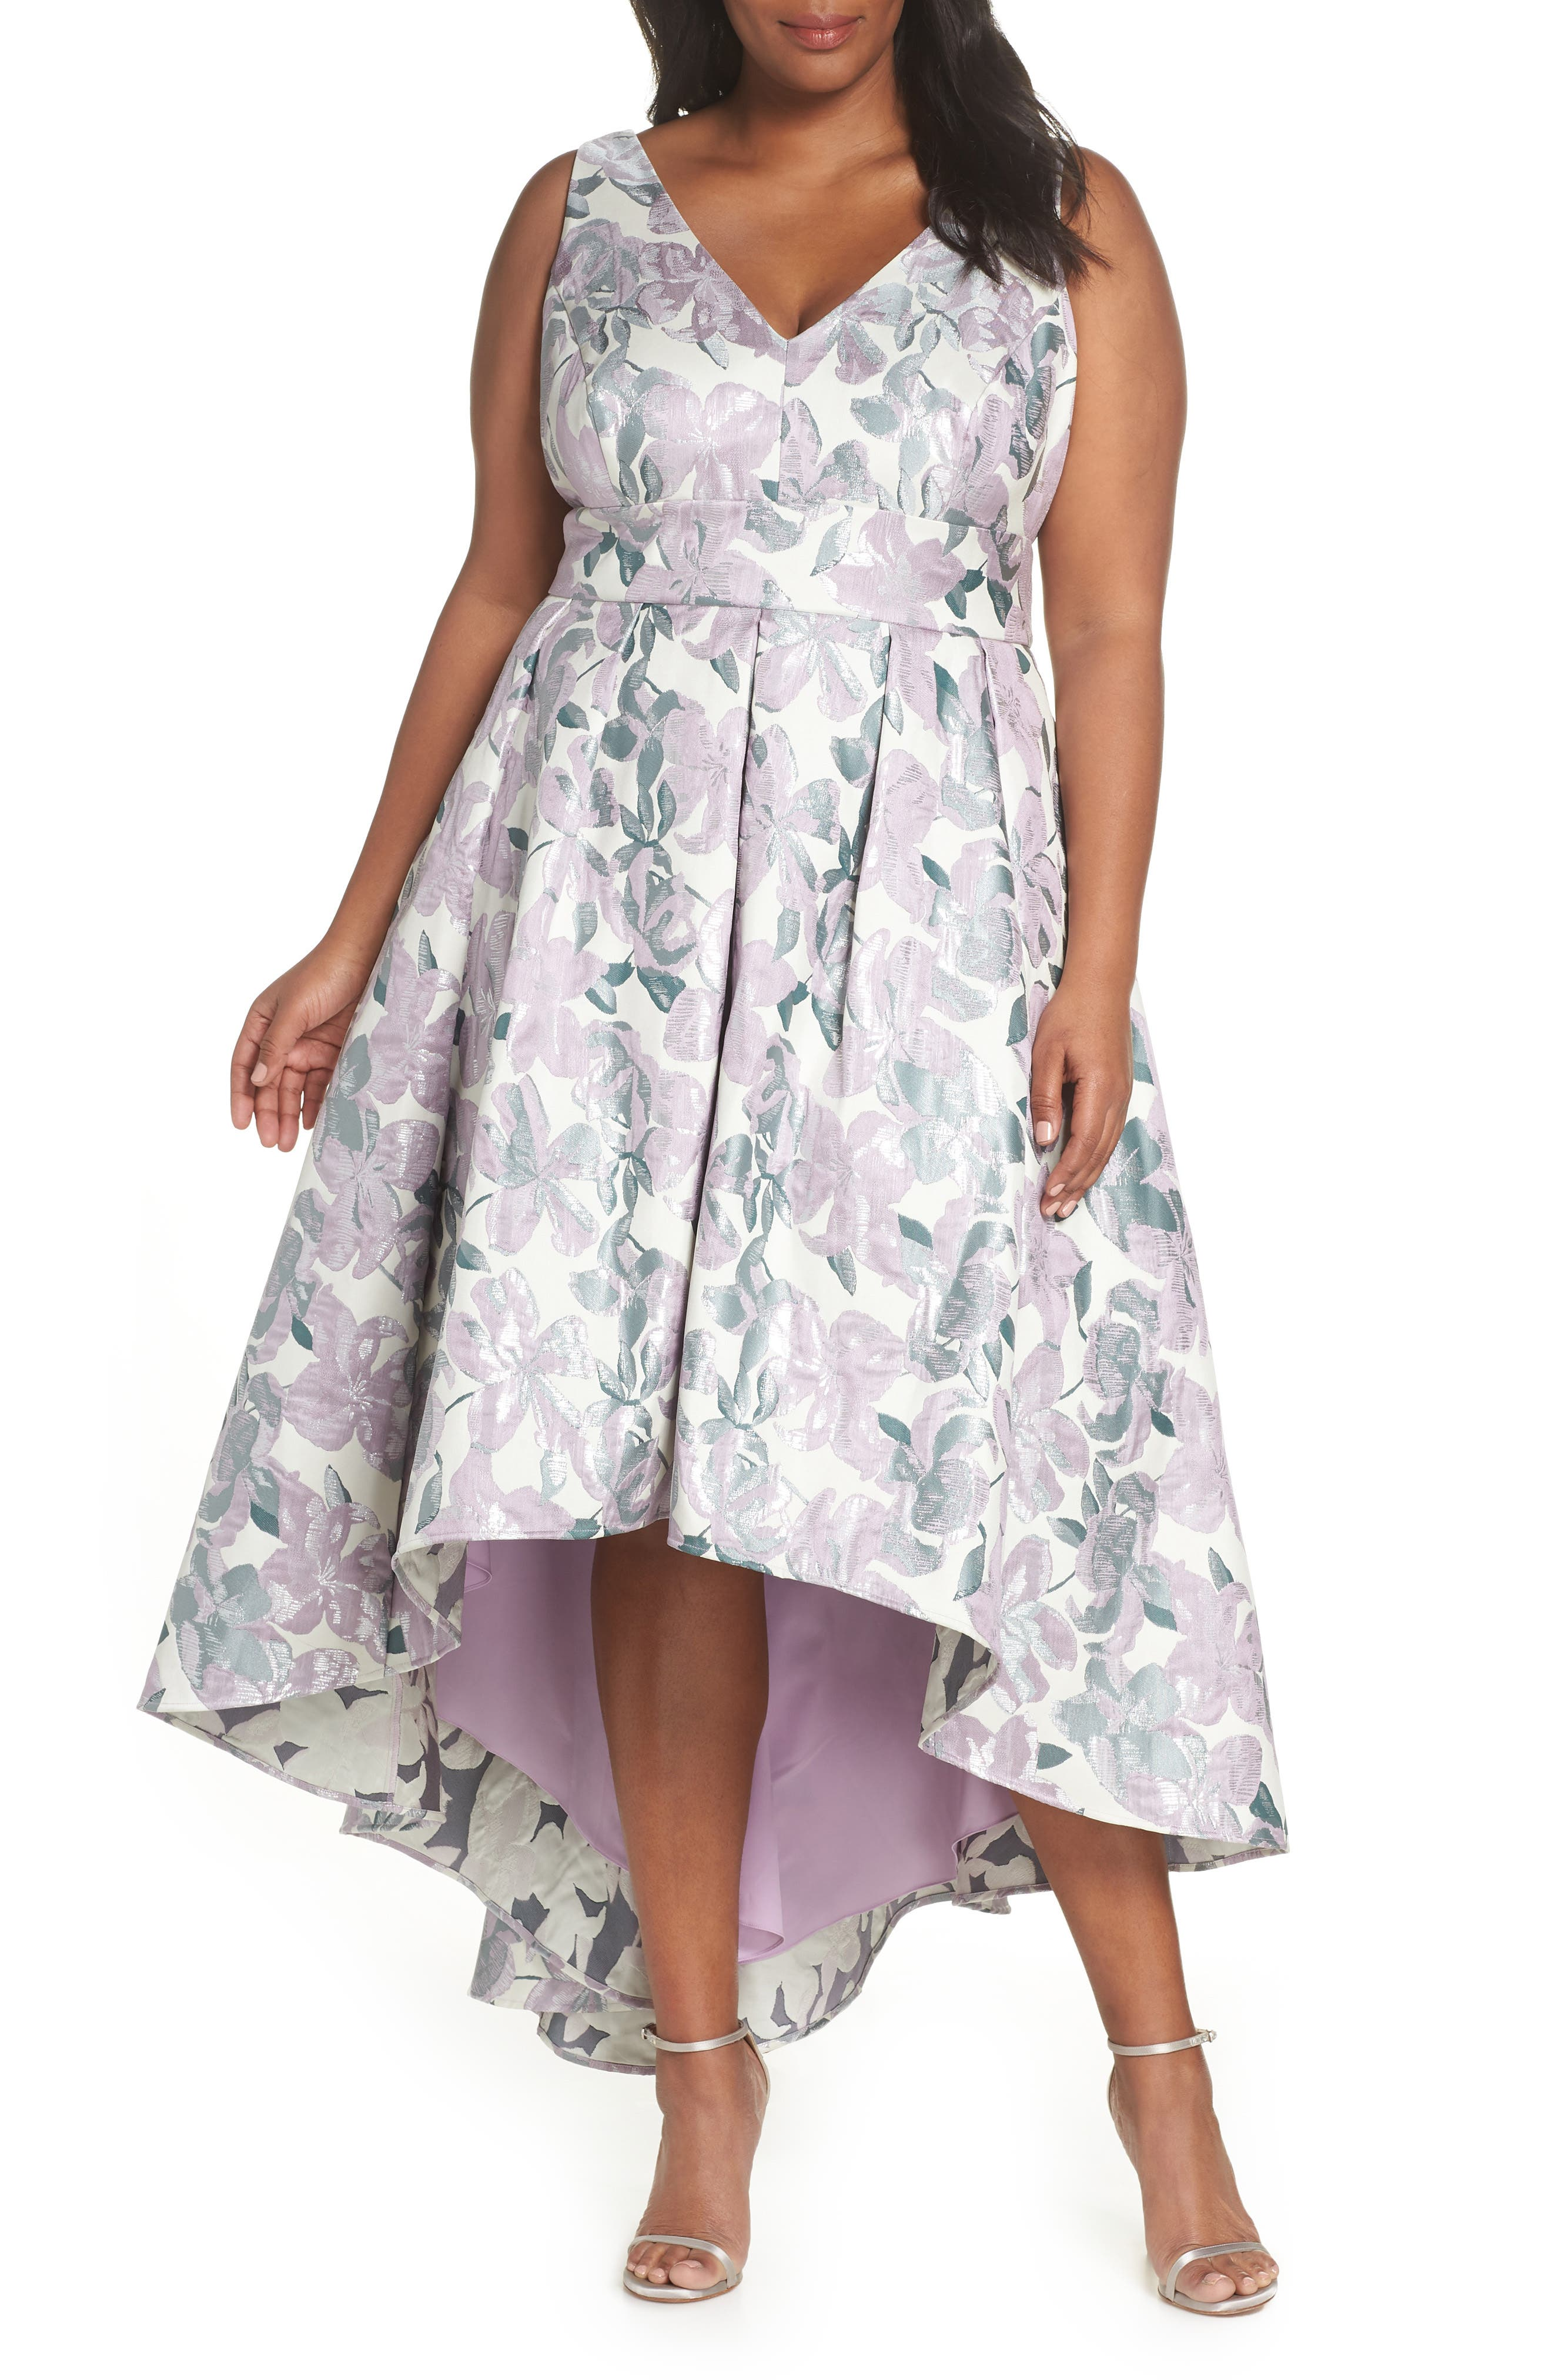 Plus Size Eliza J Floral Jacquard High/low Evening Dress, Purple